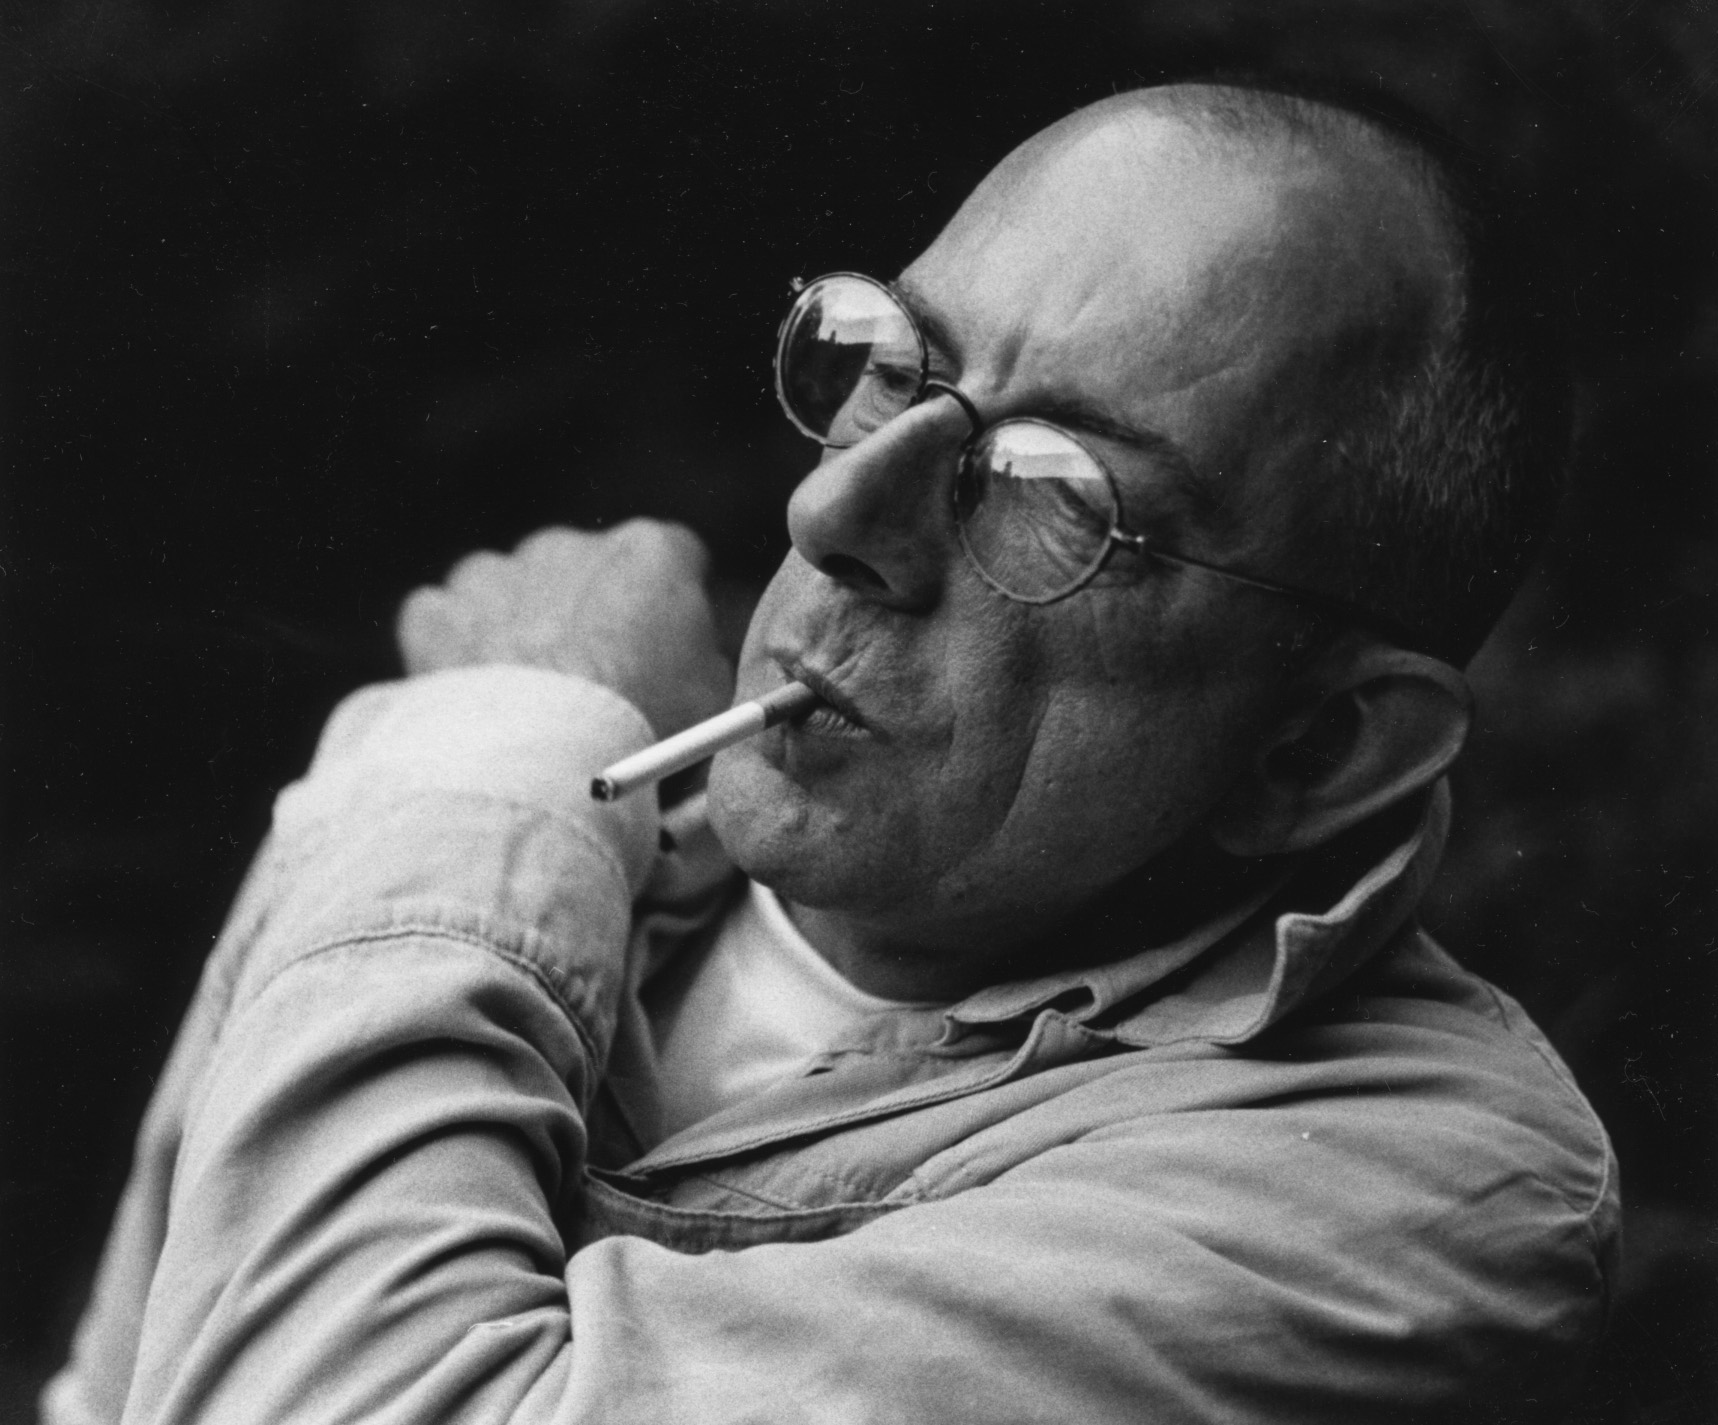 English painter leaning with a cigarette in his mouth